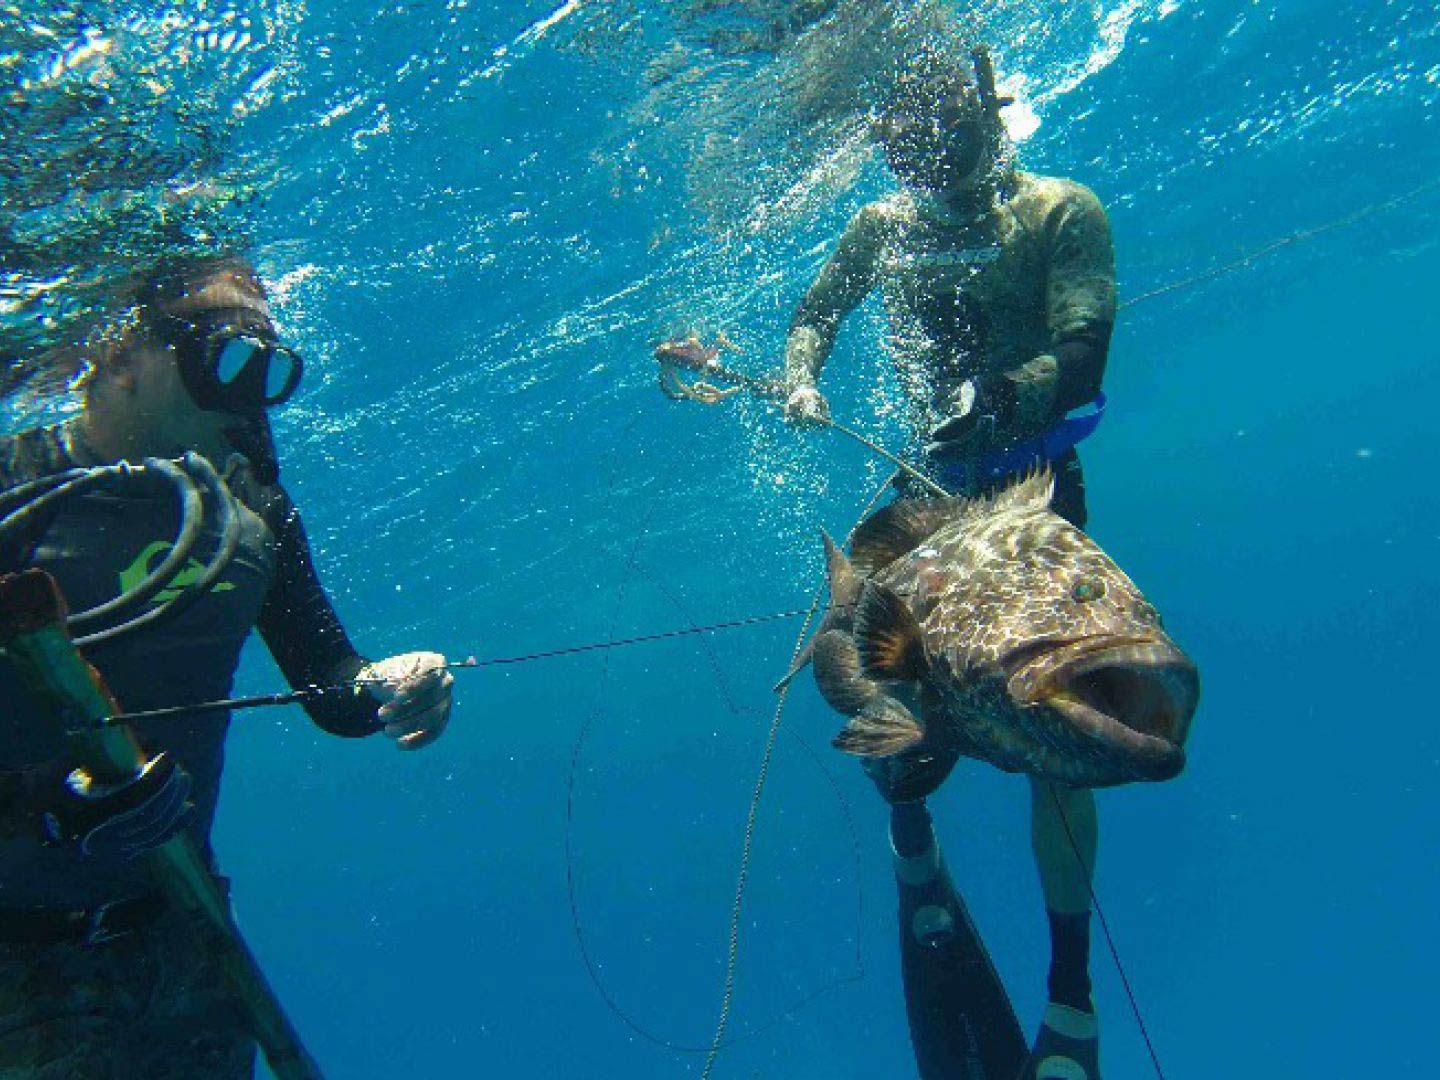 Two divers approach a Black Grouper with spear fishing equipment underwater